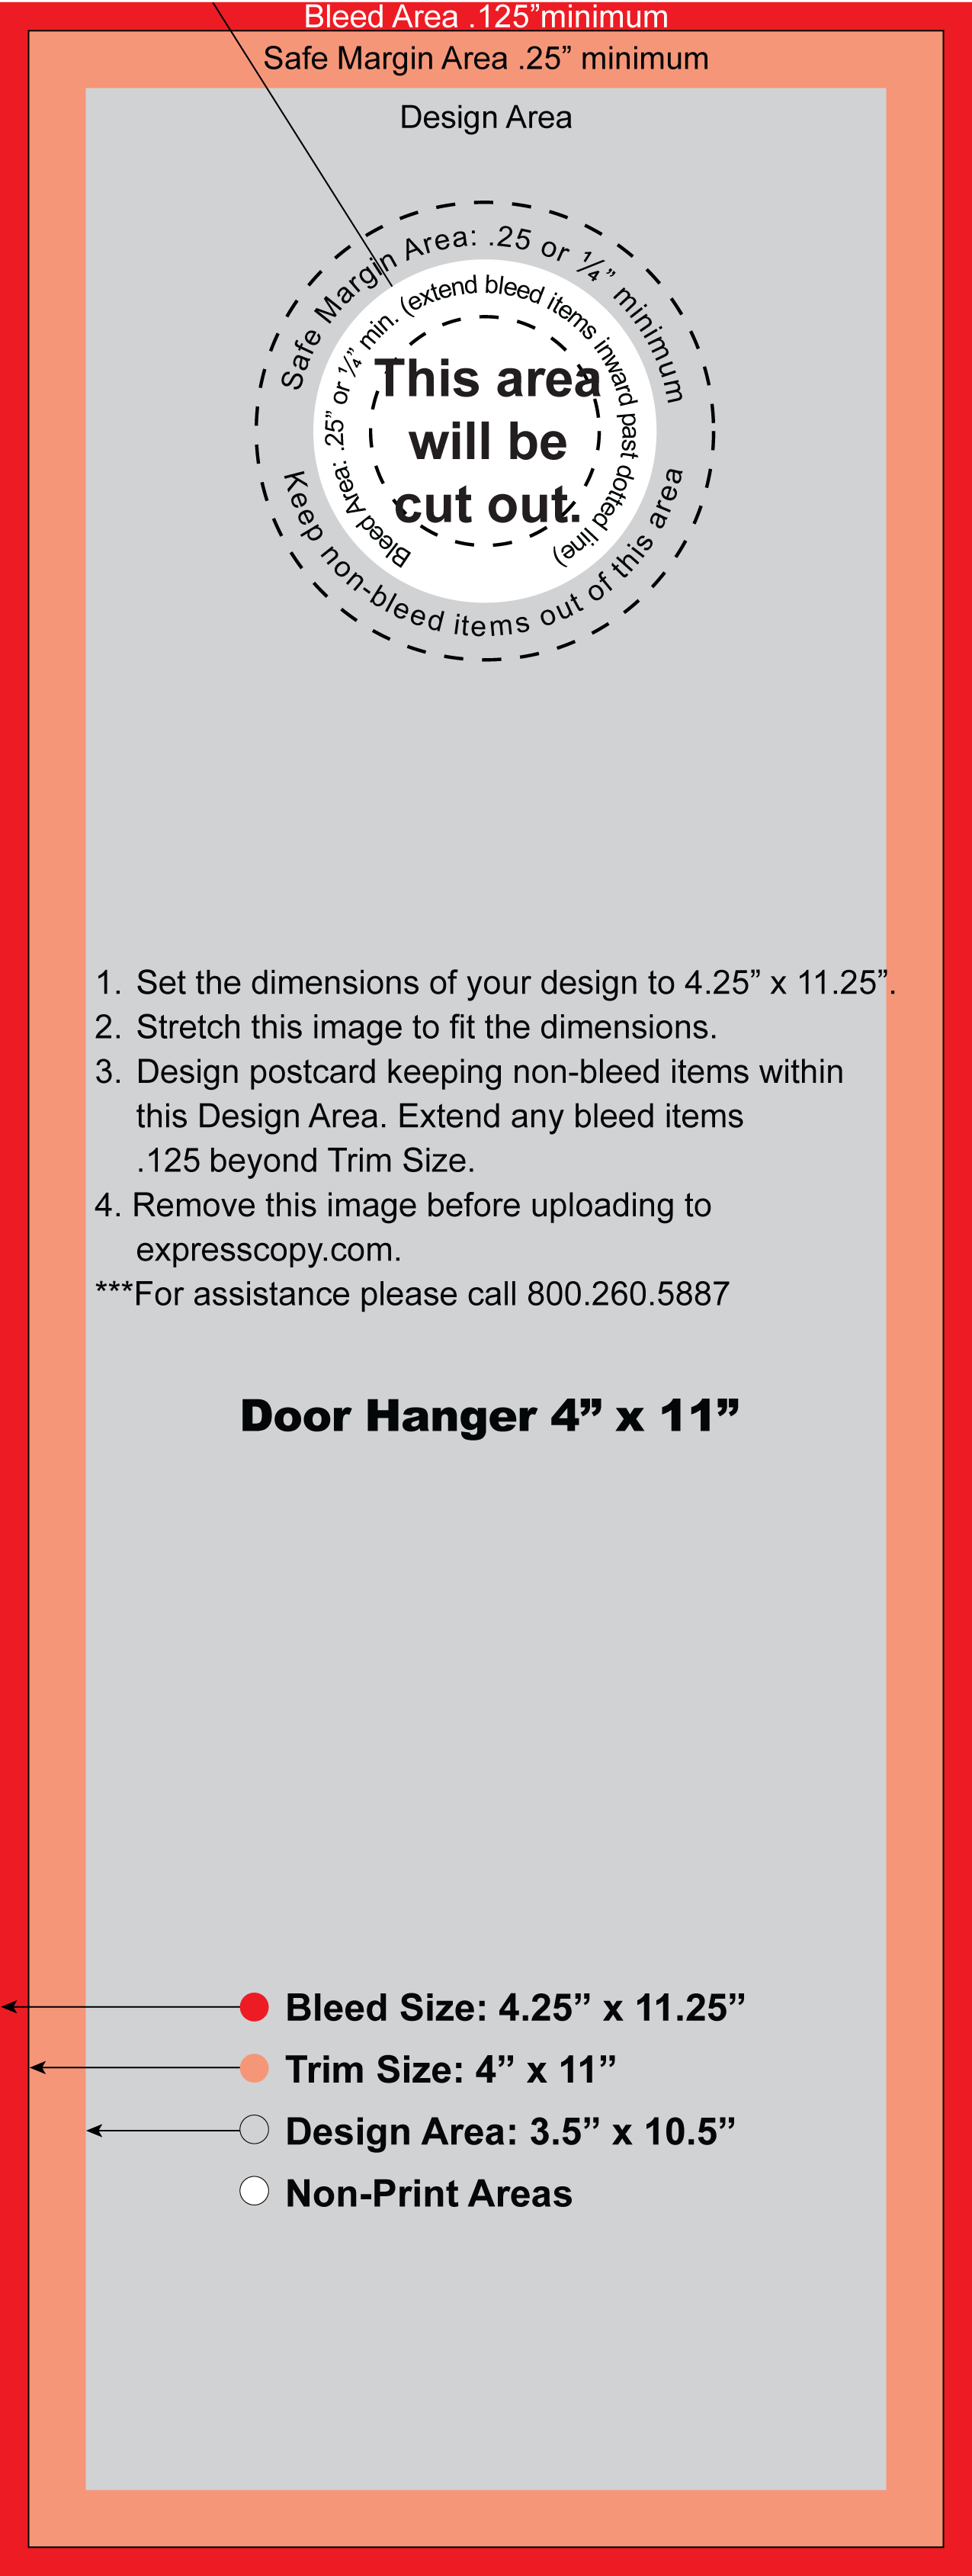 Door Hanger Print Specifications expresscopycom